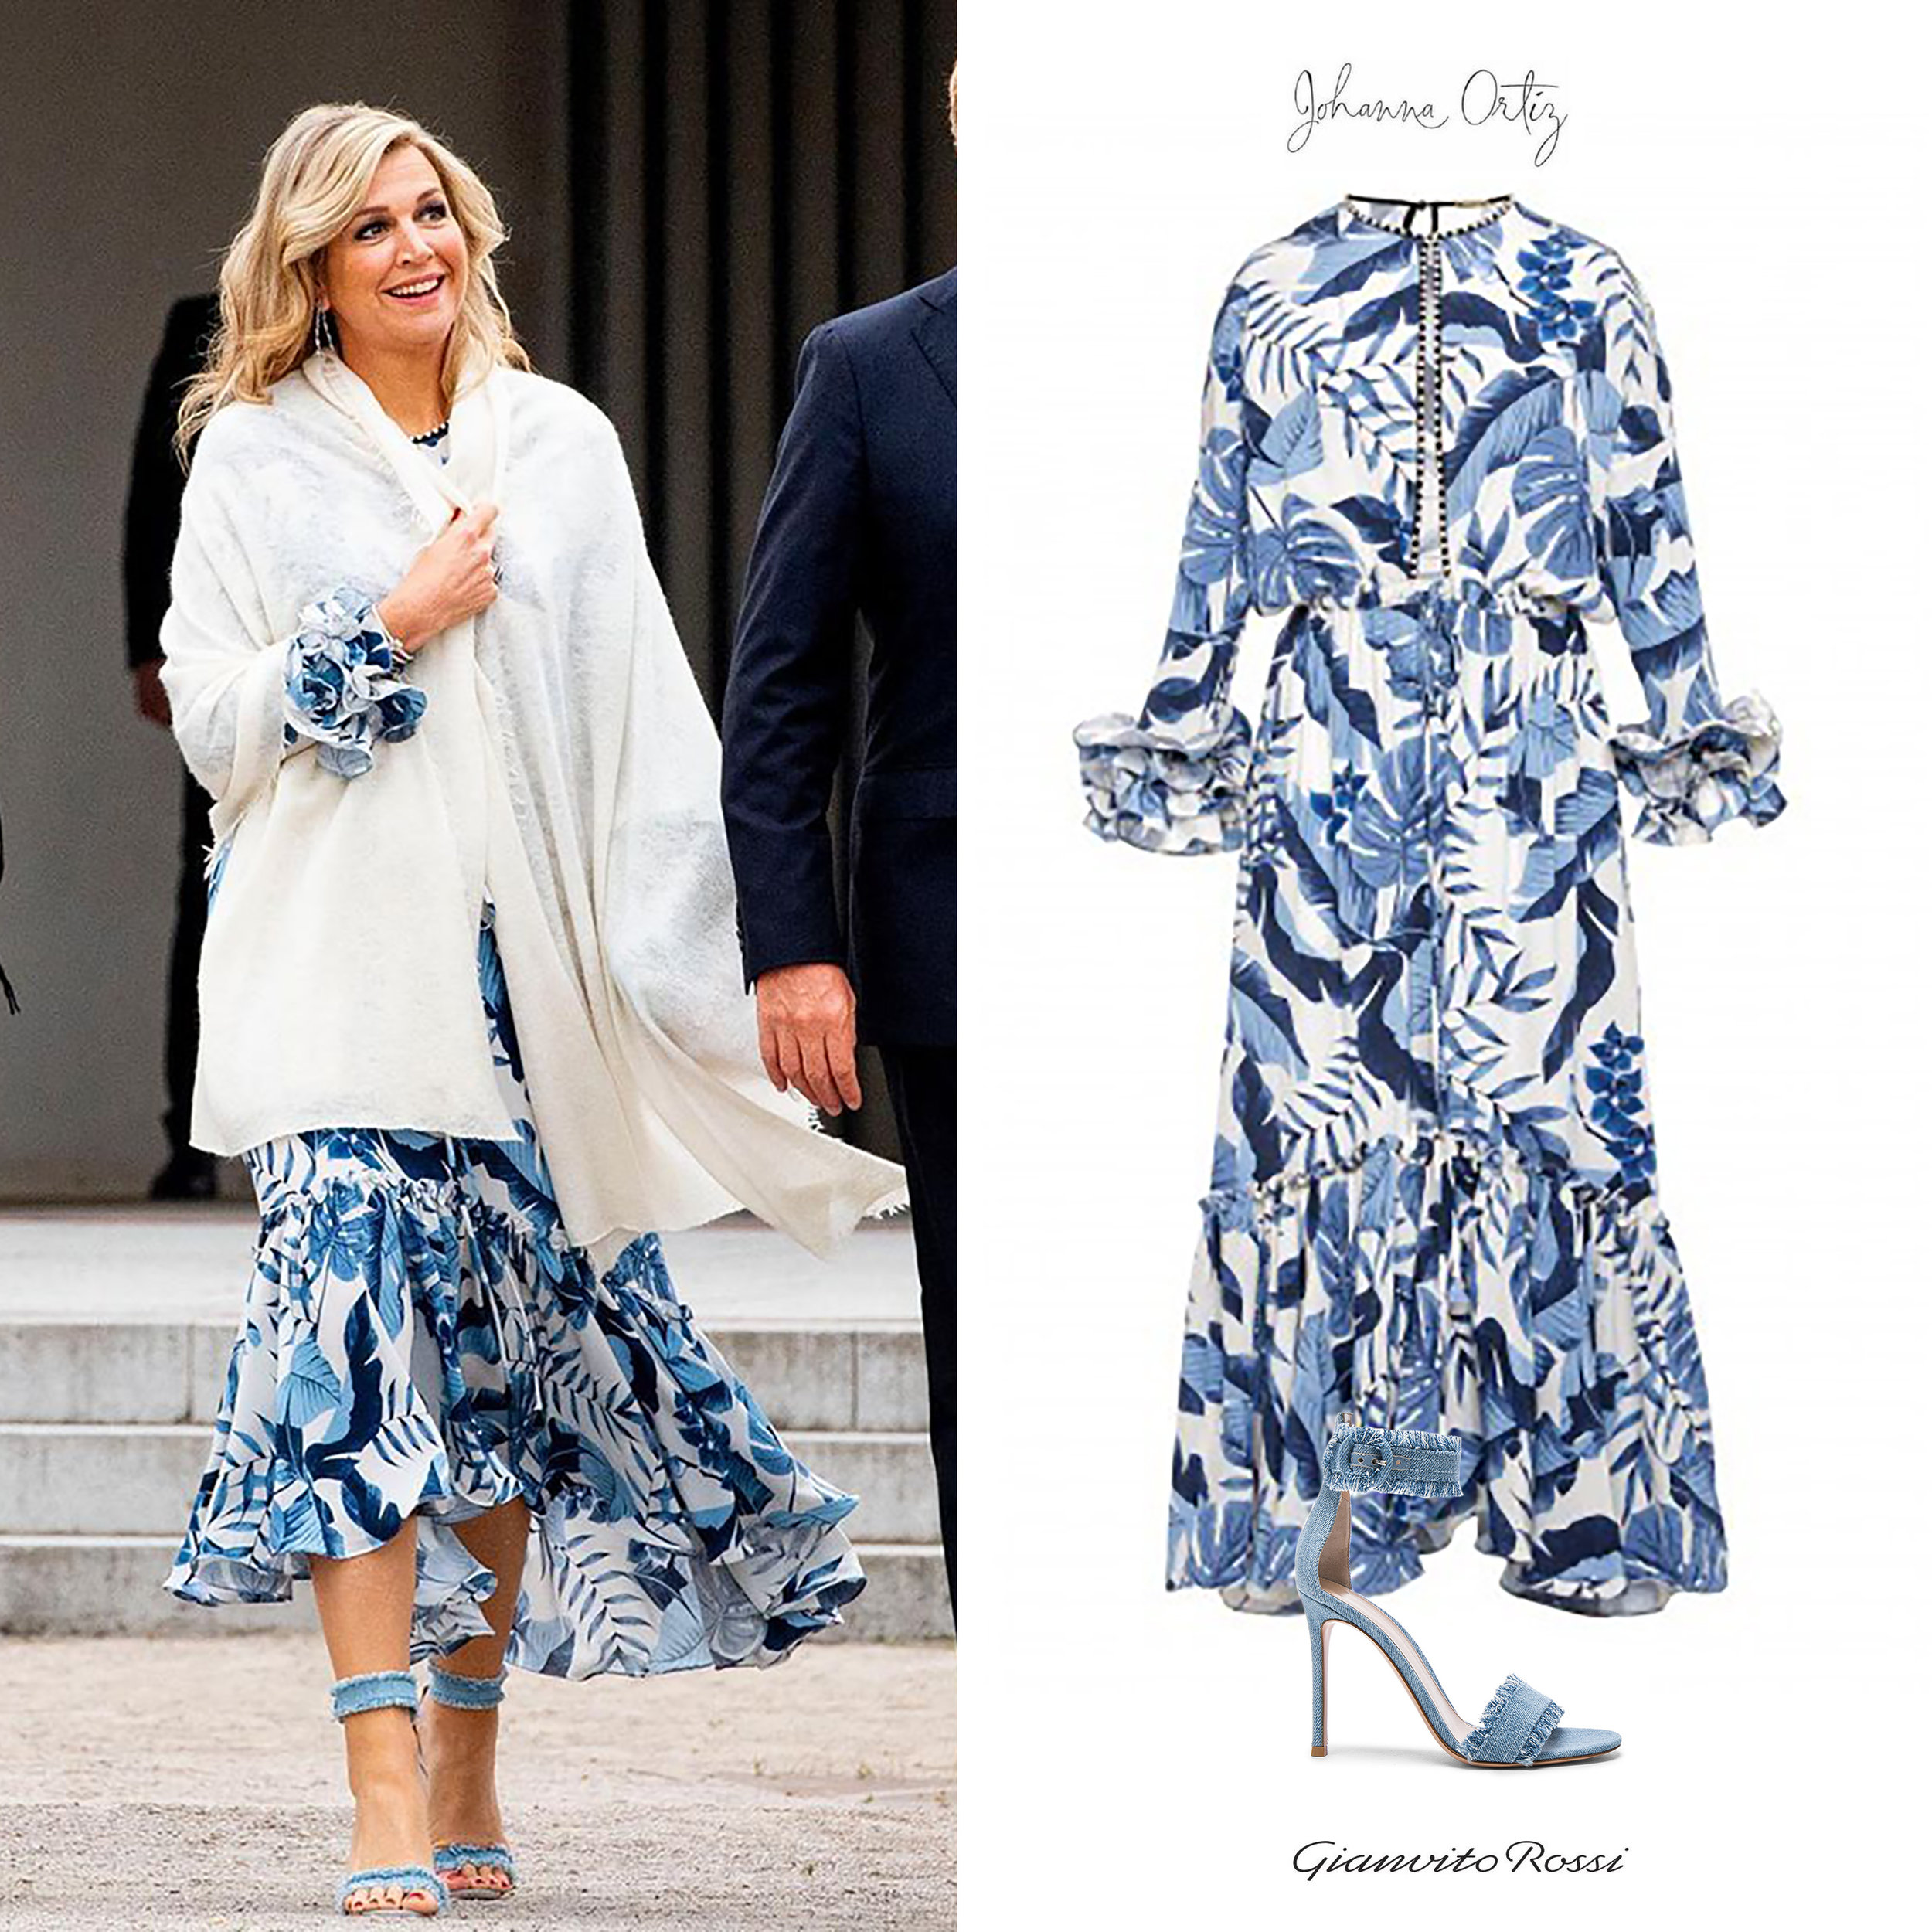 Queen_Maxima_Johanna_Ortiz_Floral_Print_Dress_Lola_Gianvito_Rossi-Sandals-Zapatos.jpg